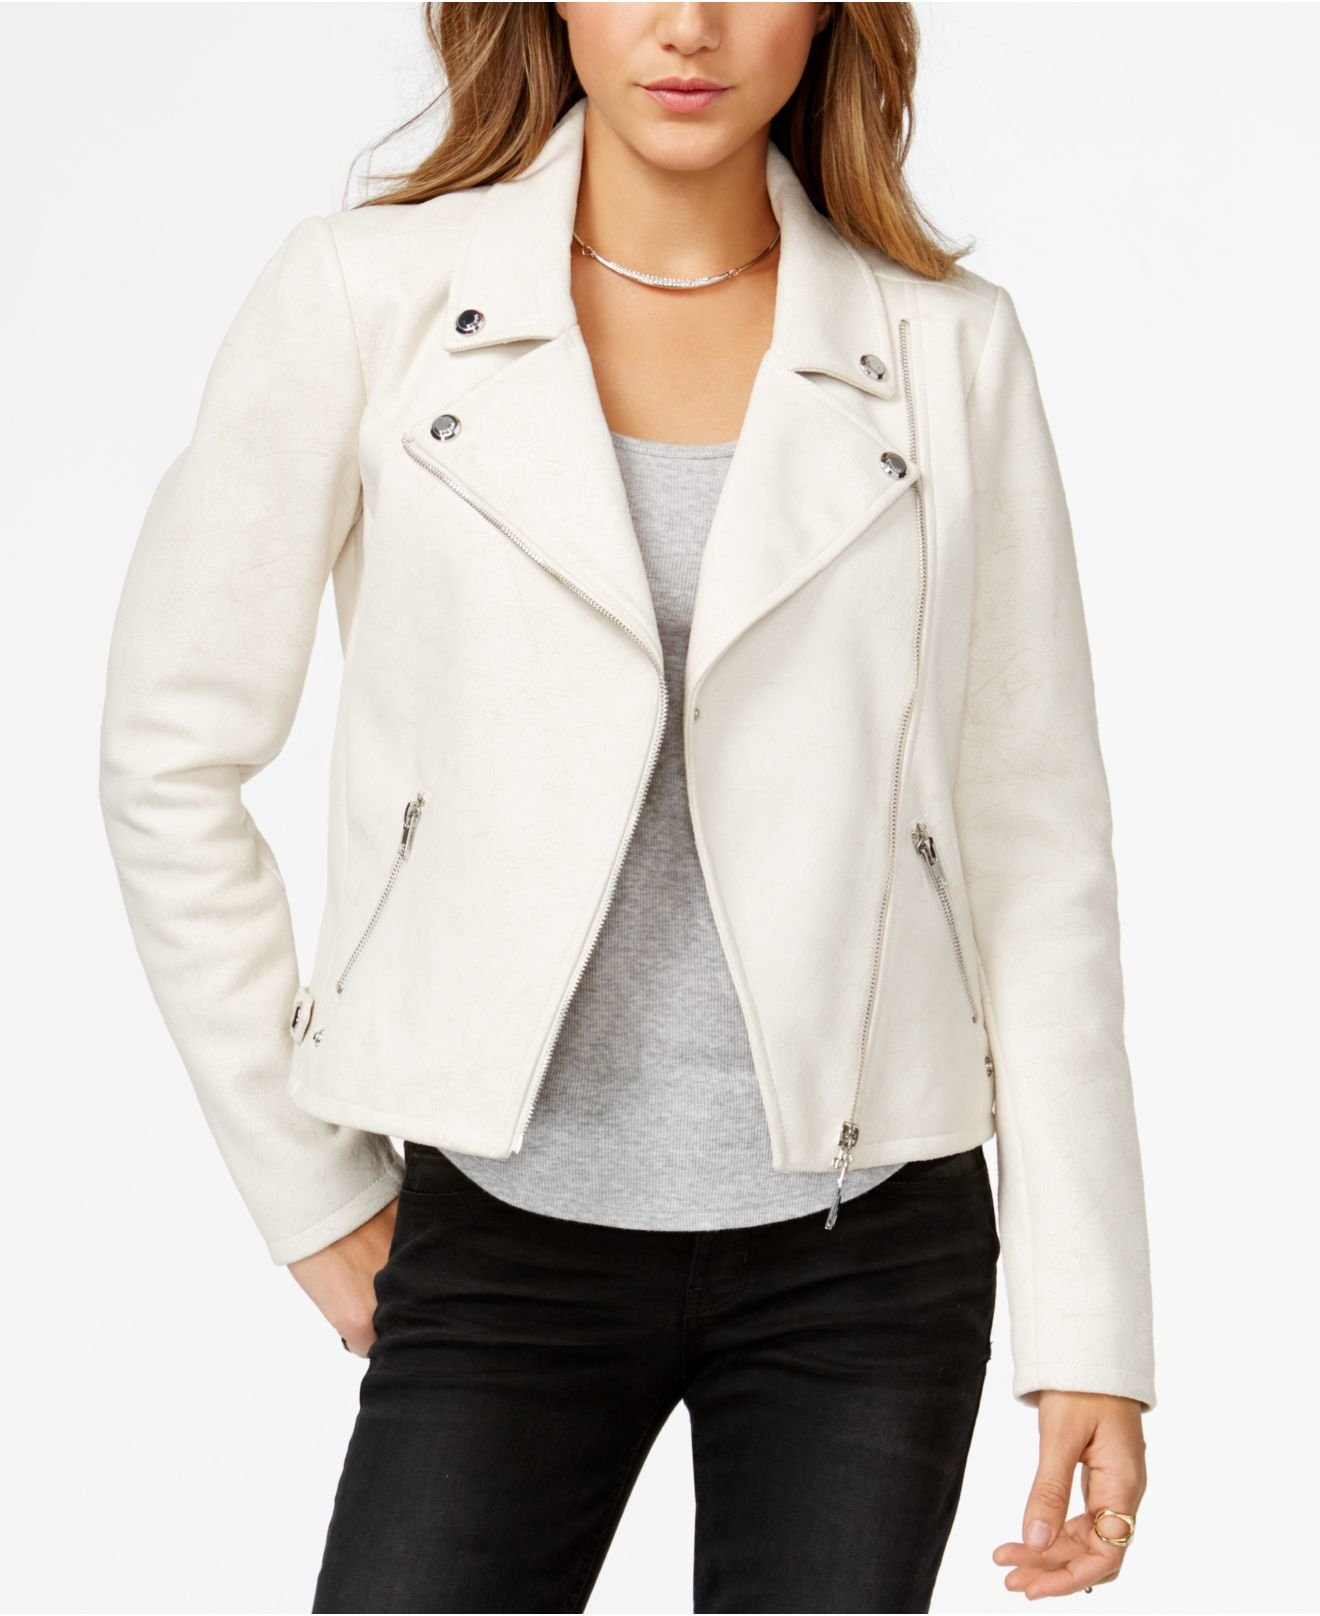 Guess Faux-suede Moto Jacket in White - Lyst